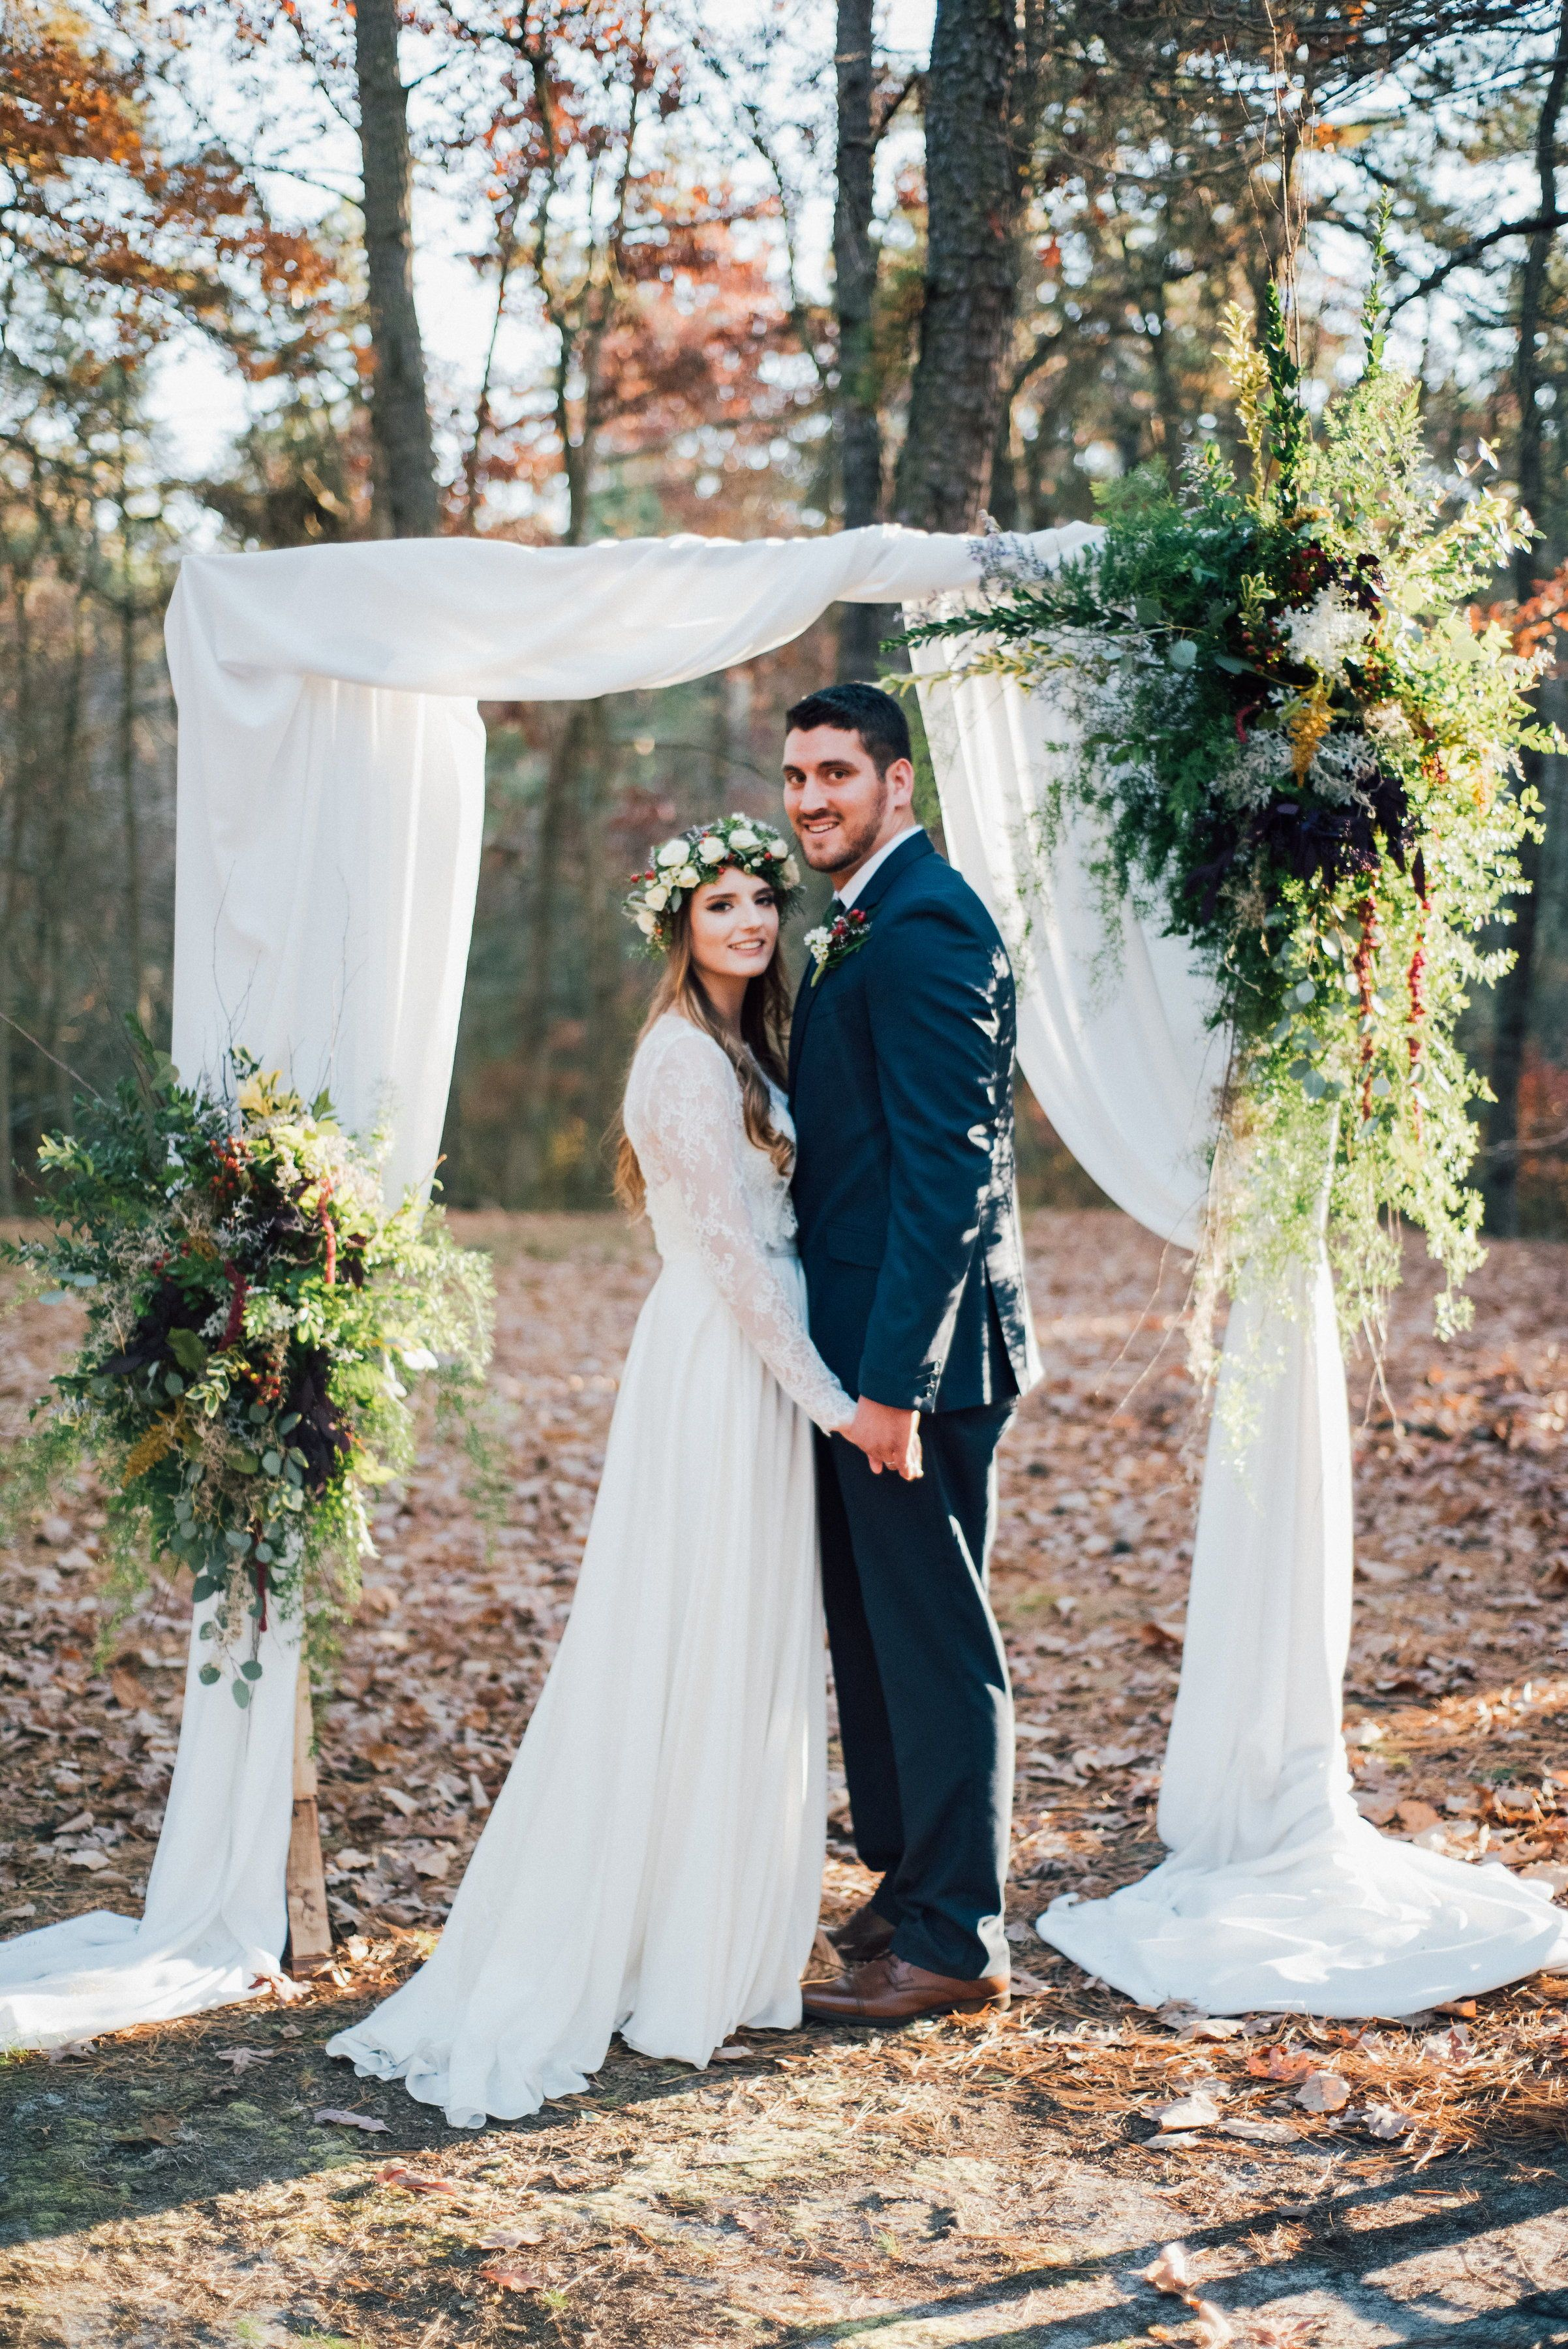 Wedding decorations rustic october 2018 Fall Wedding Outdoor Ceremony  wedding ideas  Fall bohemian